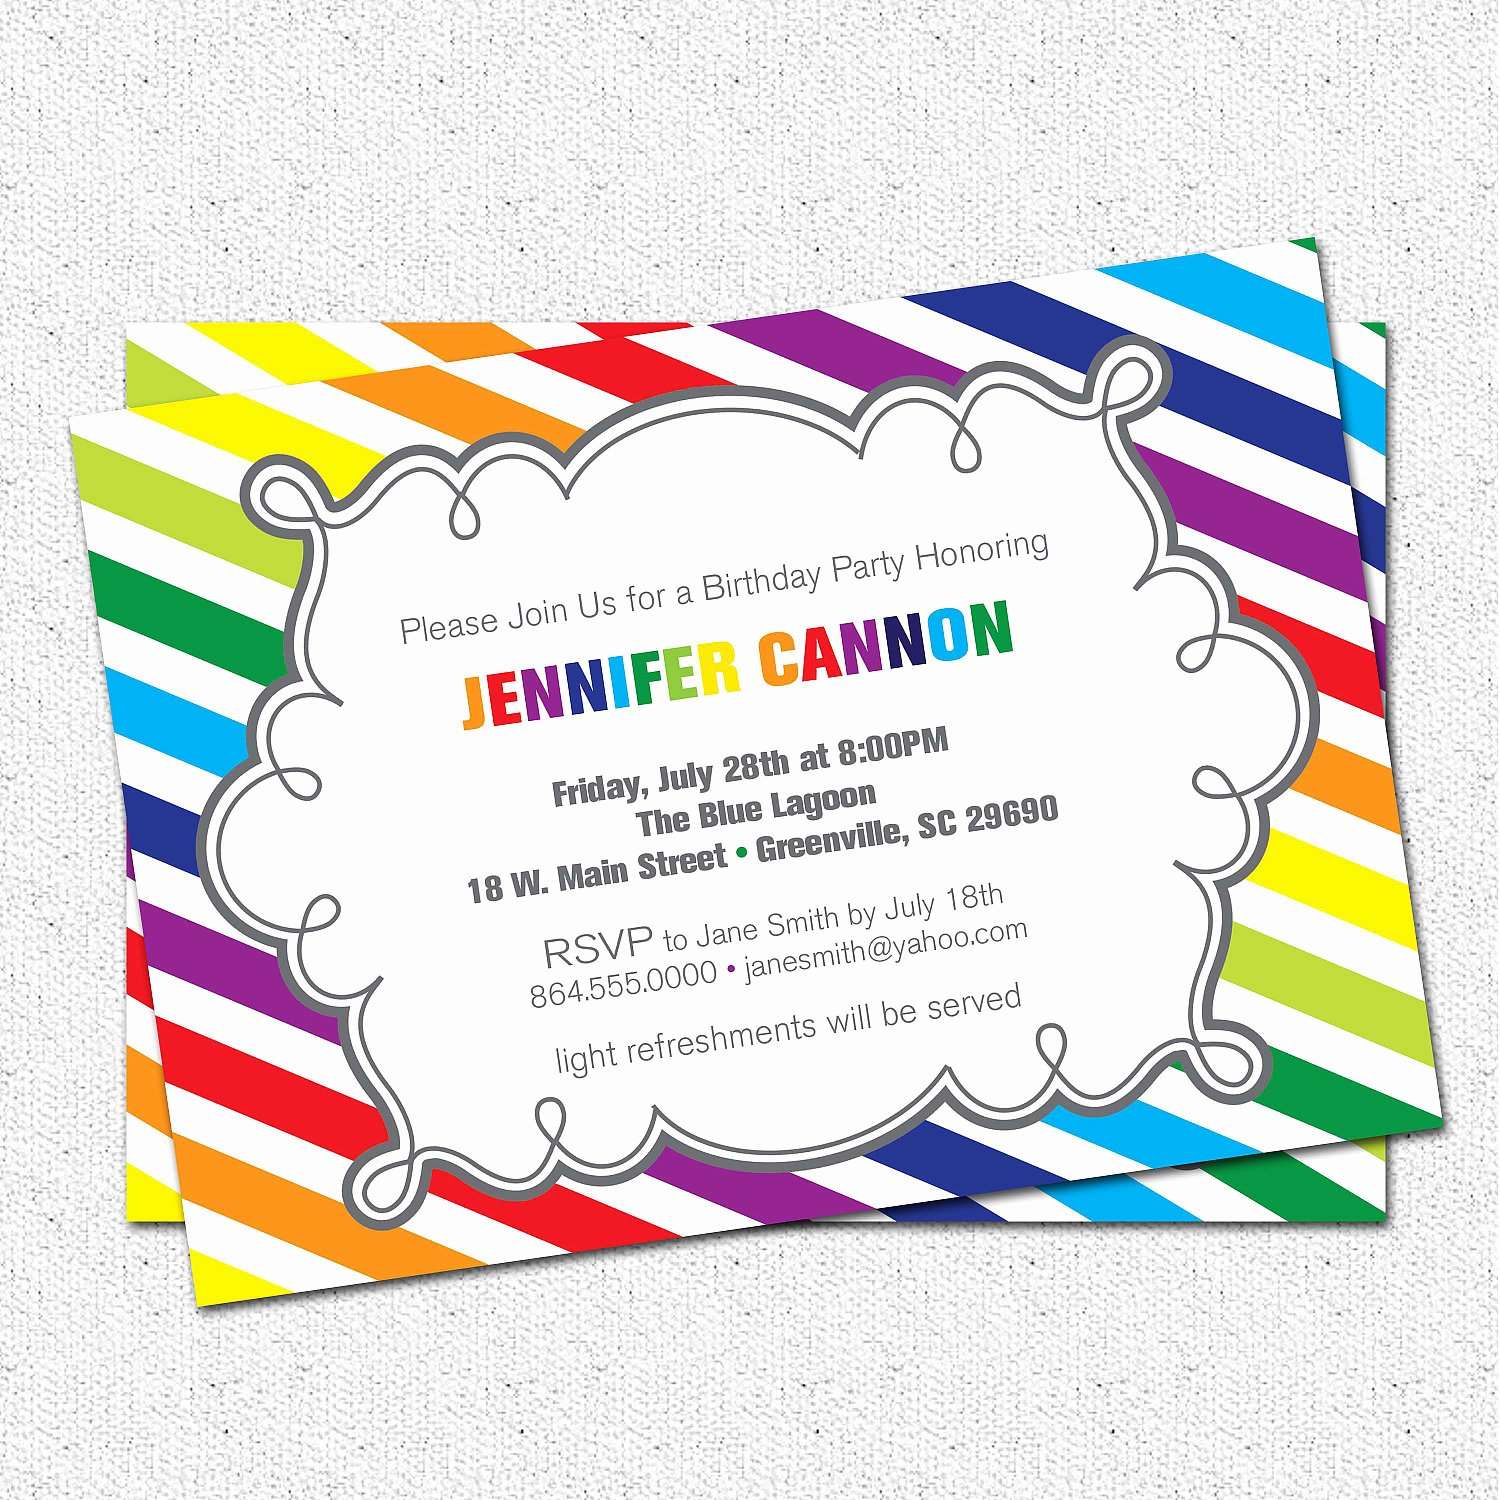 Birthday Invitation Templates Free Printable Birthday